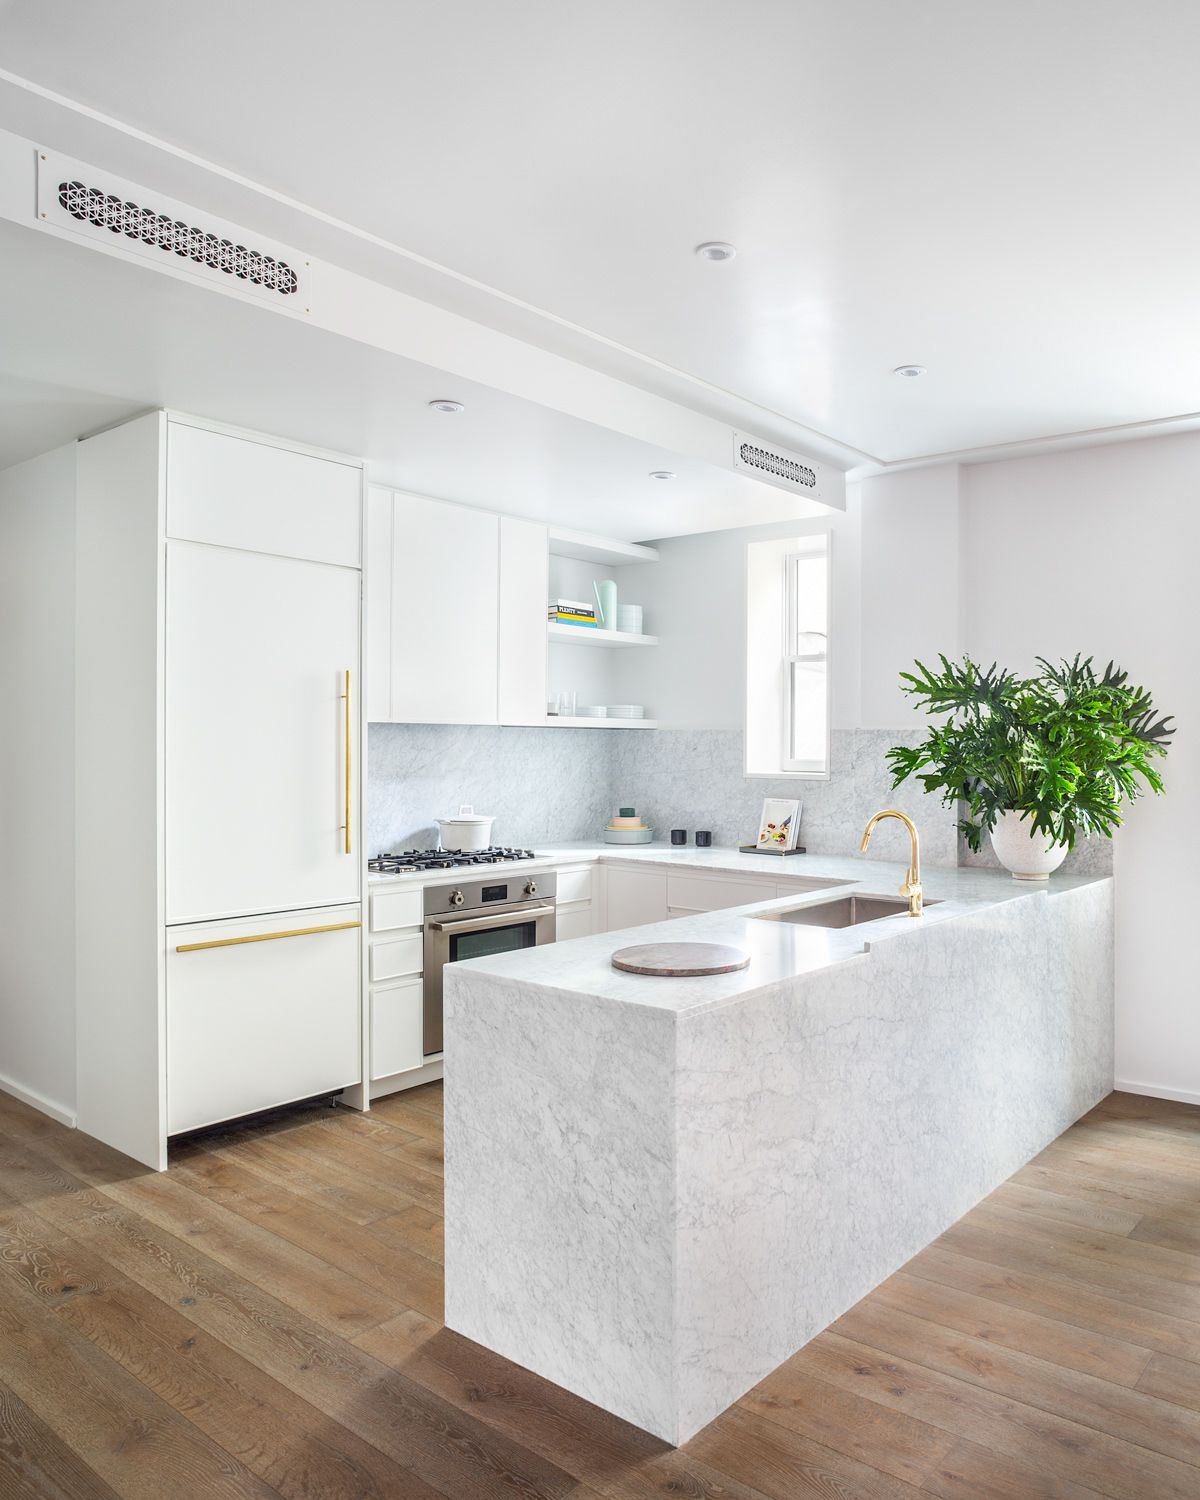 Monochromatic kitchen in white is filled with luxurious finsihes and marble surfaces